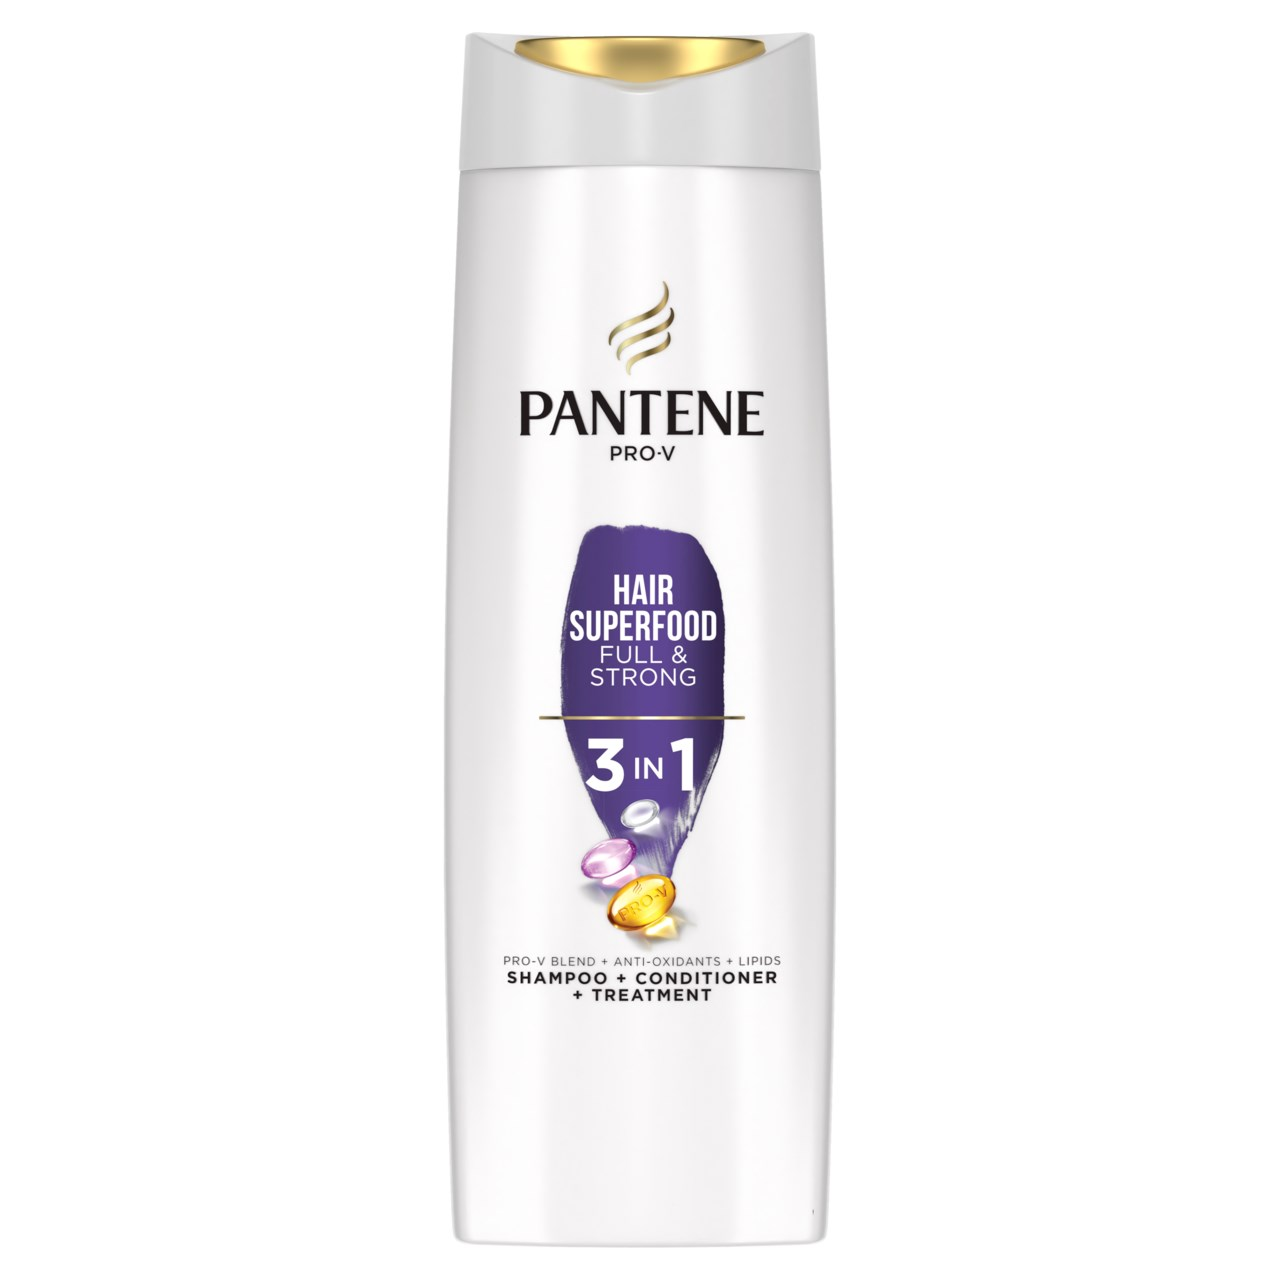 Pantene Superfood šampón 3v1 1x360 ml